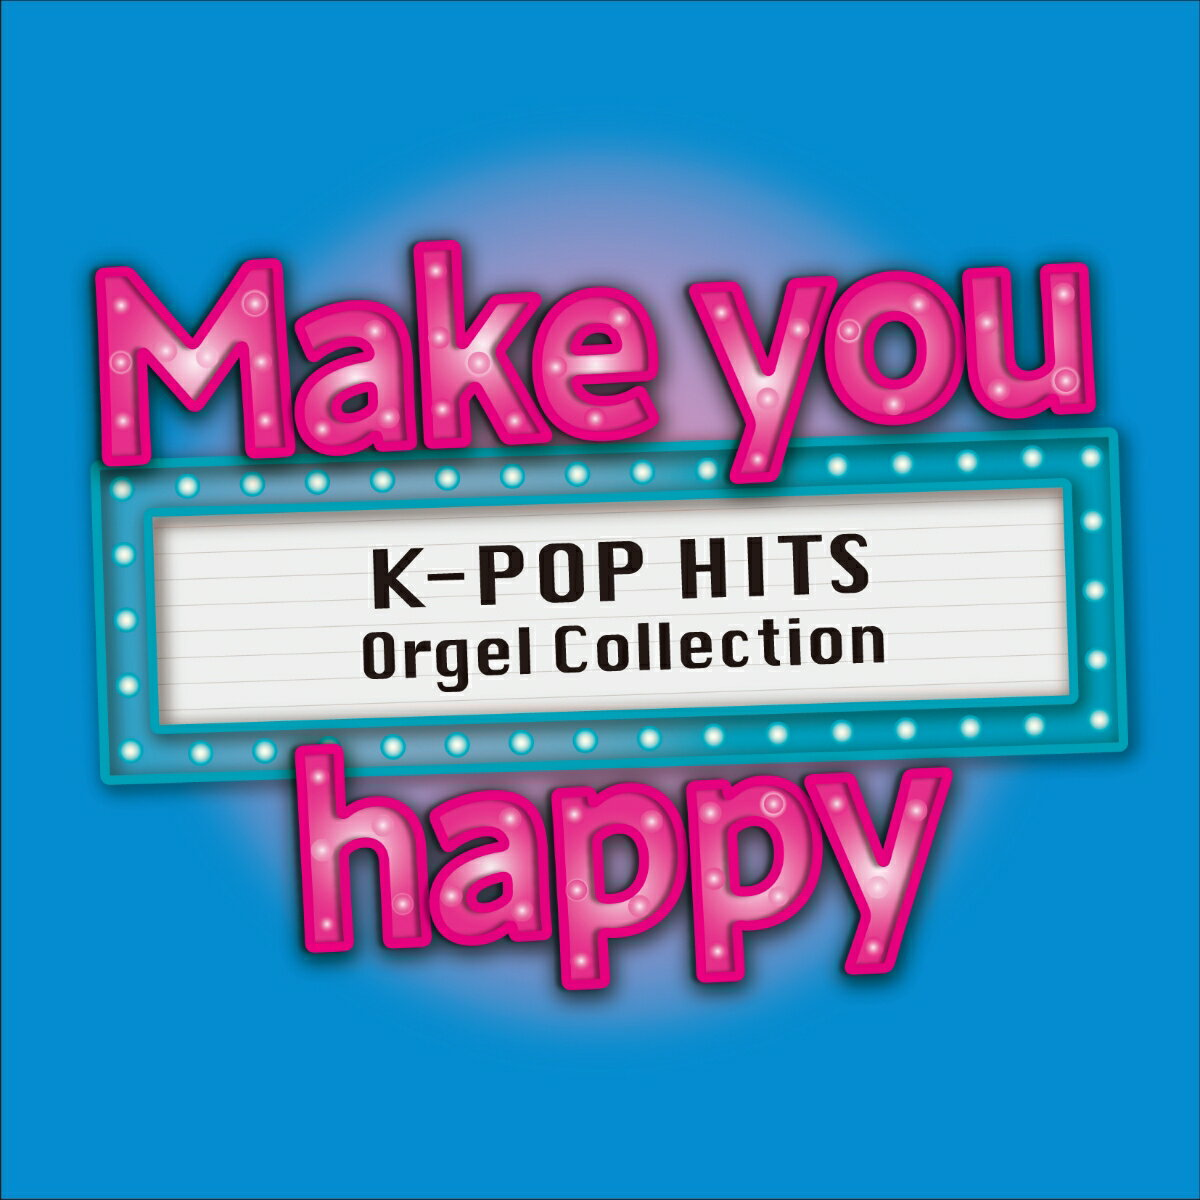 Make you happy 〜K-POP HITS Orgel Collection〜画像